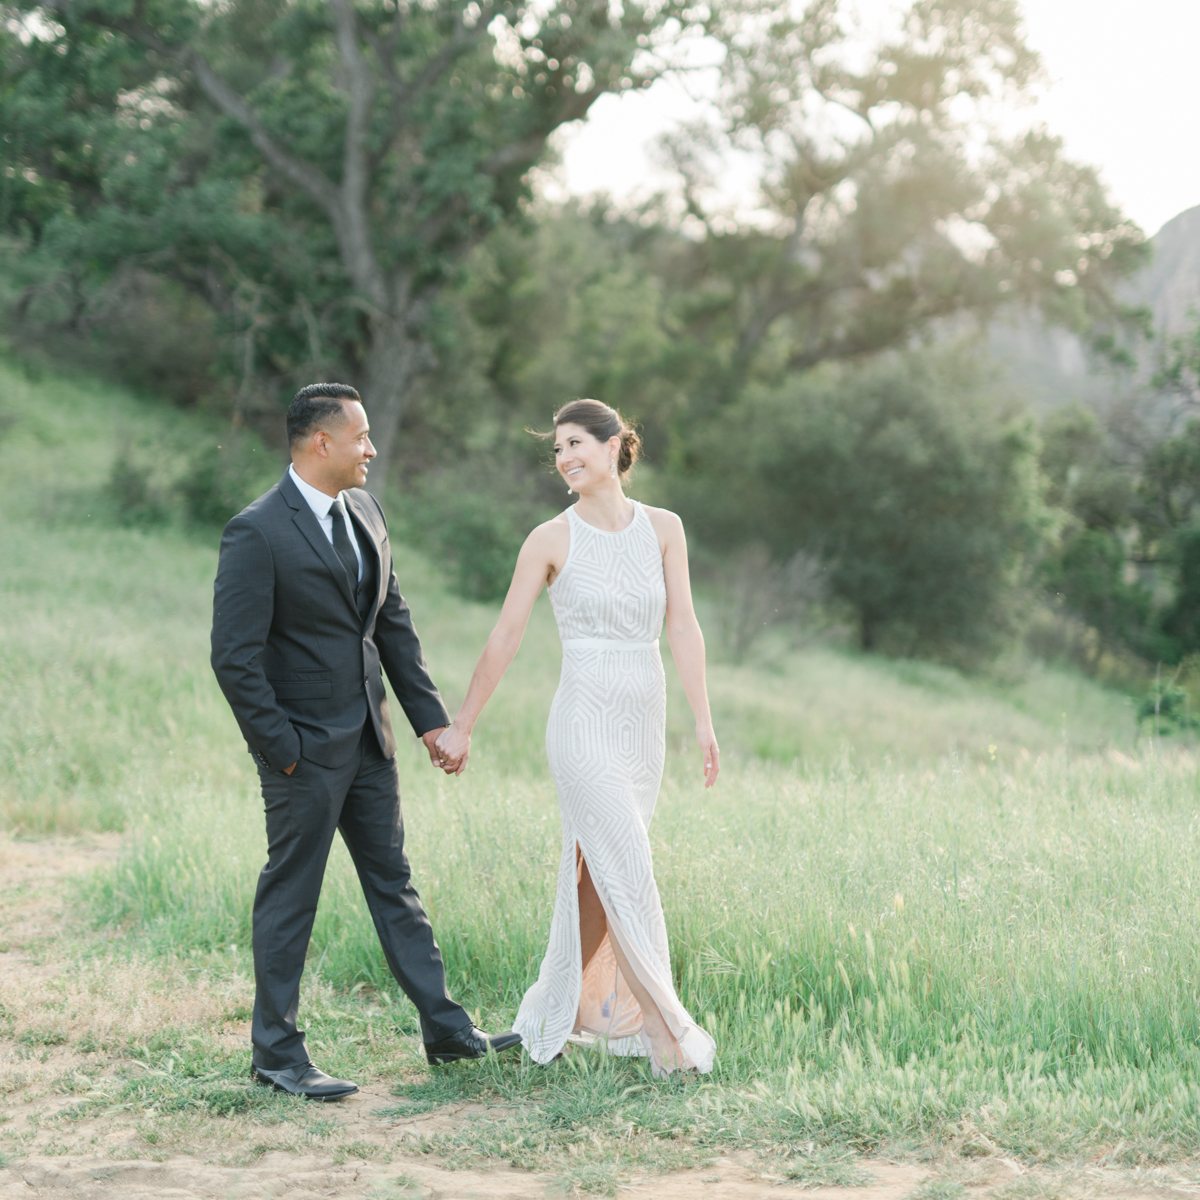 day-after-wedding-shoot-malibu-creek-state-park-los-angeles-photographer-19.jpg